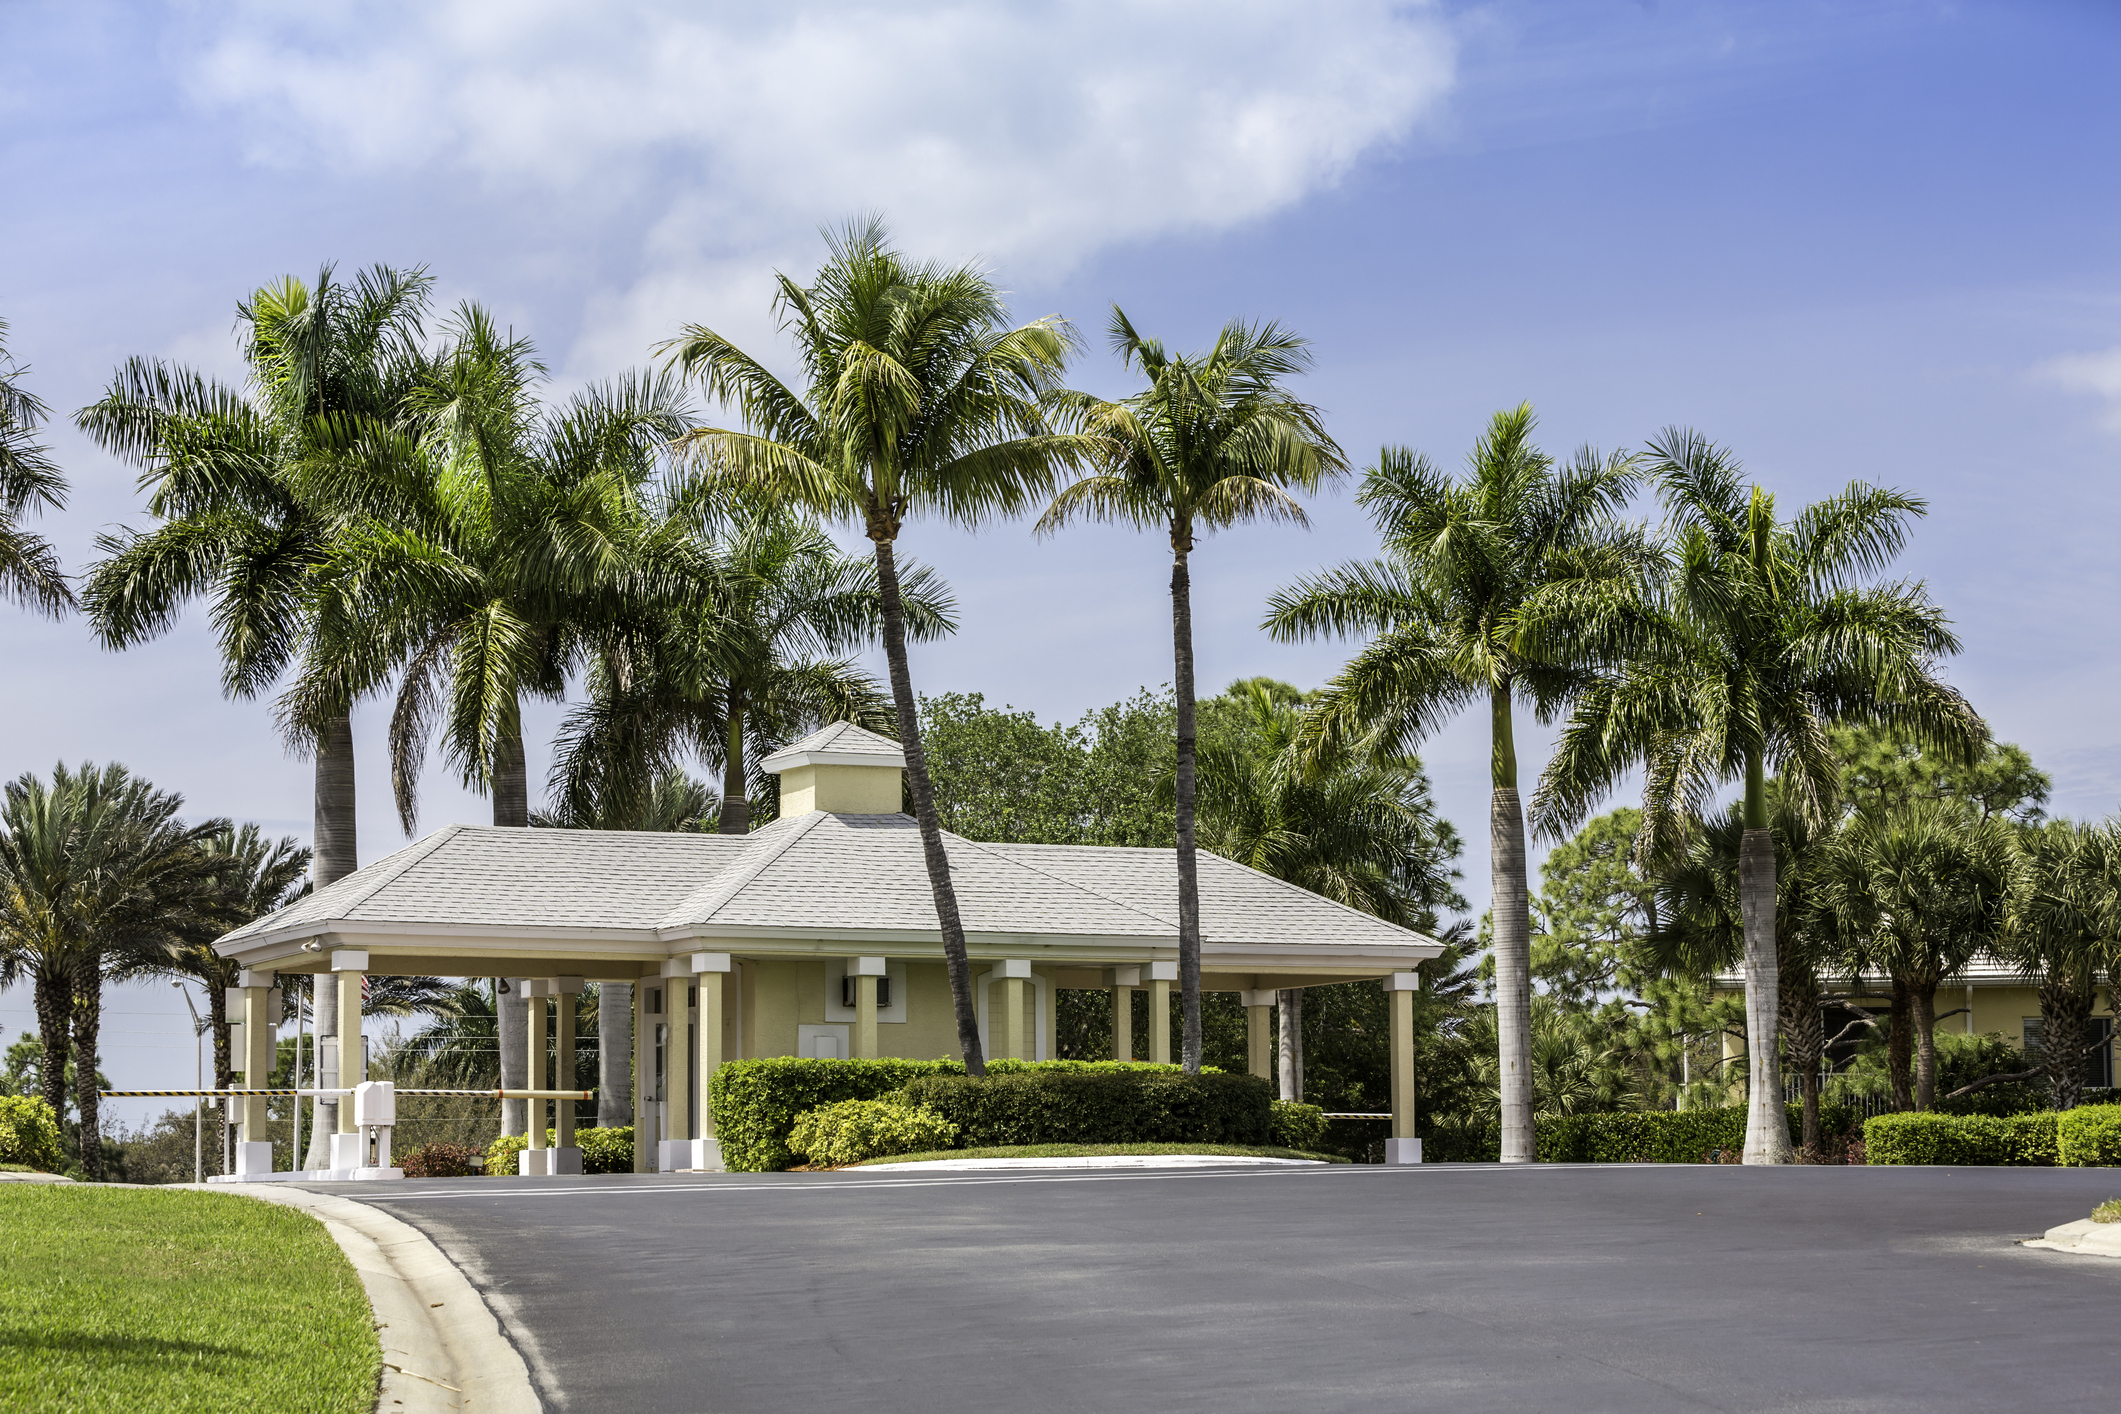 Florida Gated Community Security Guards